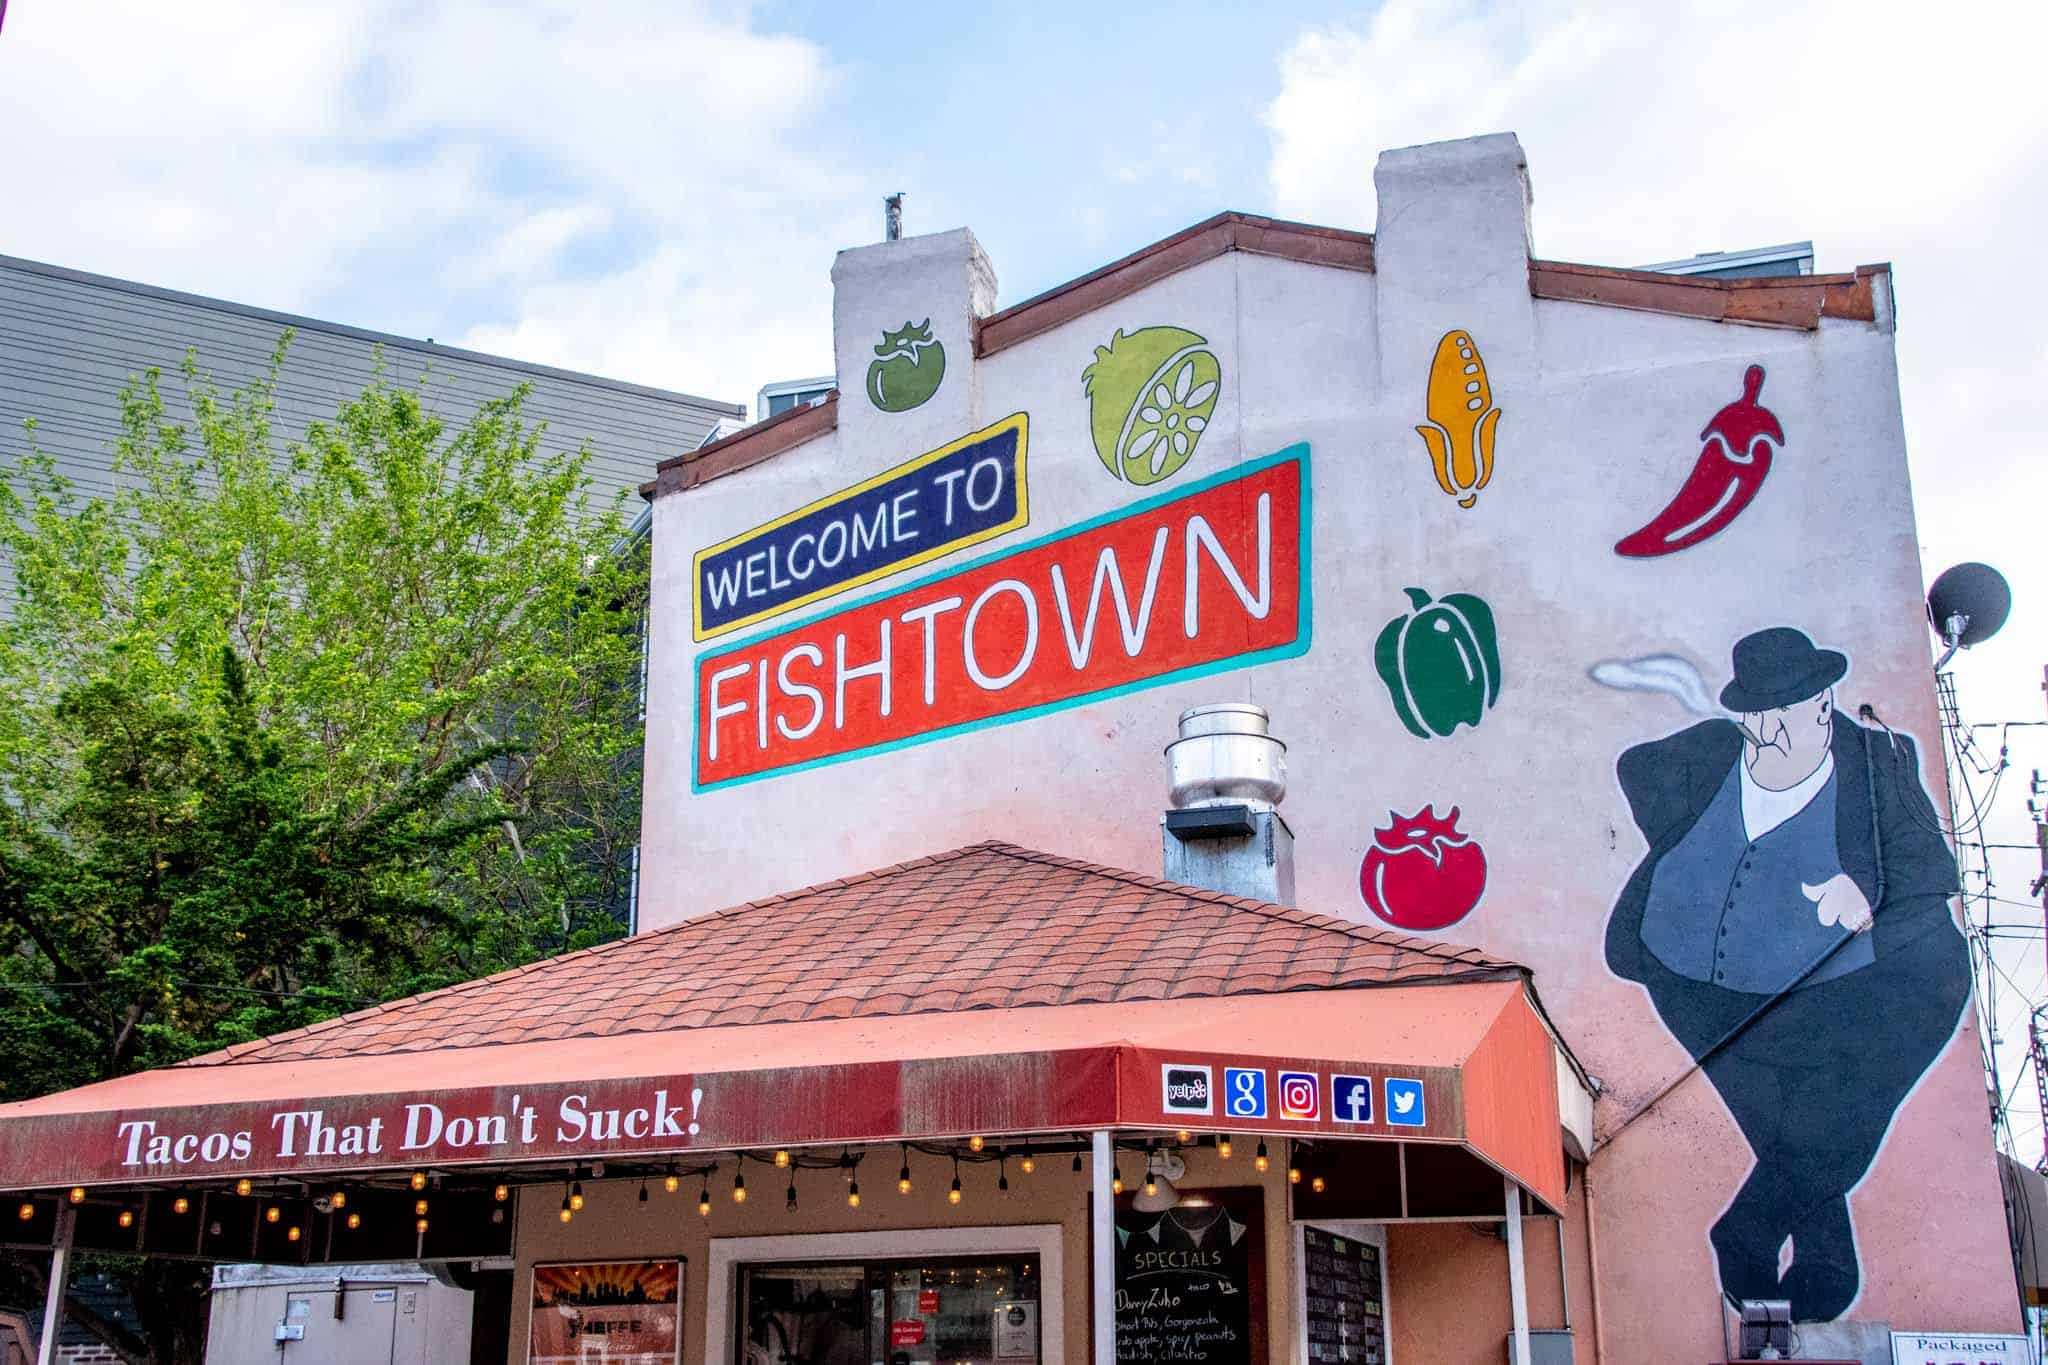 Welcome to Fishtown mural, including cartoon-style fruits and vegetable and a man with a cane